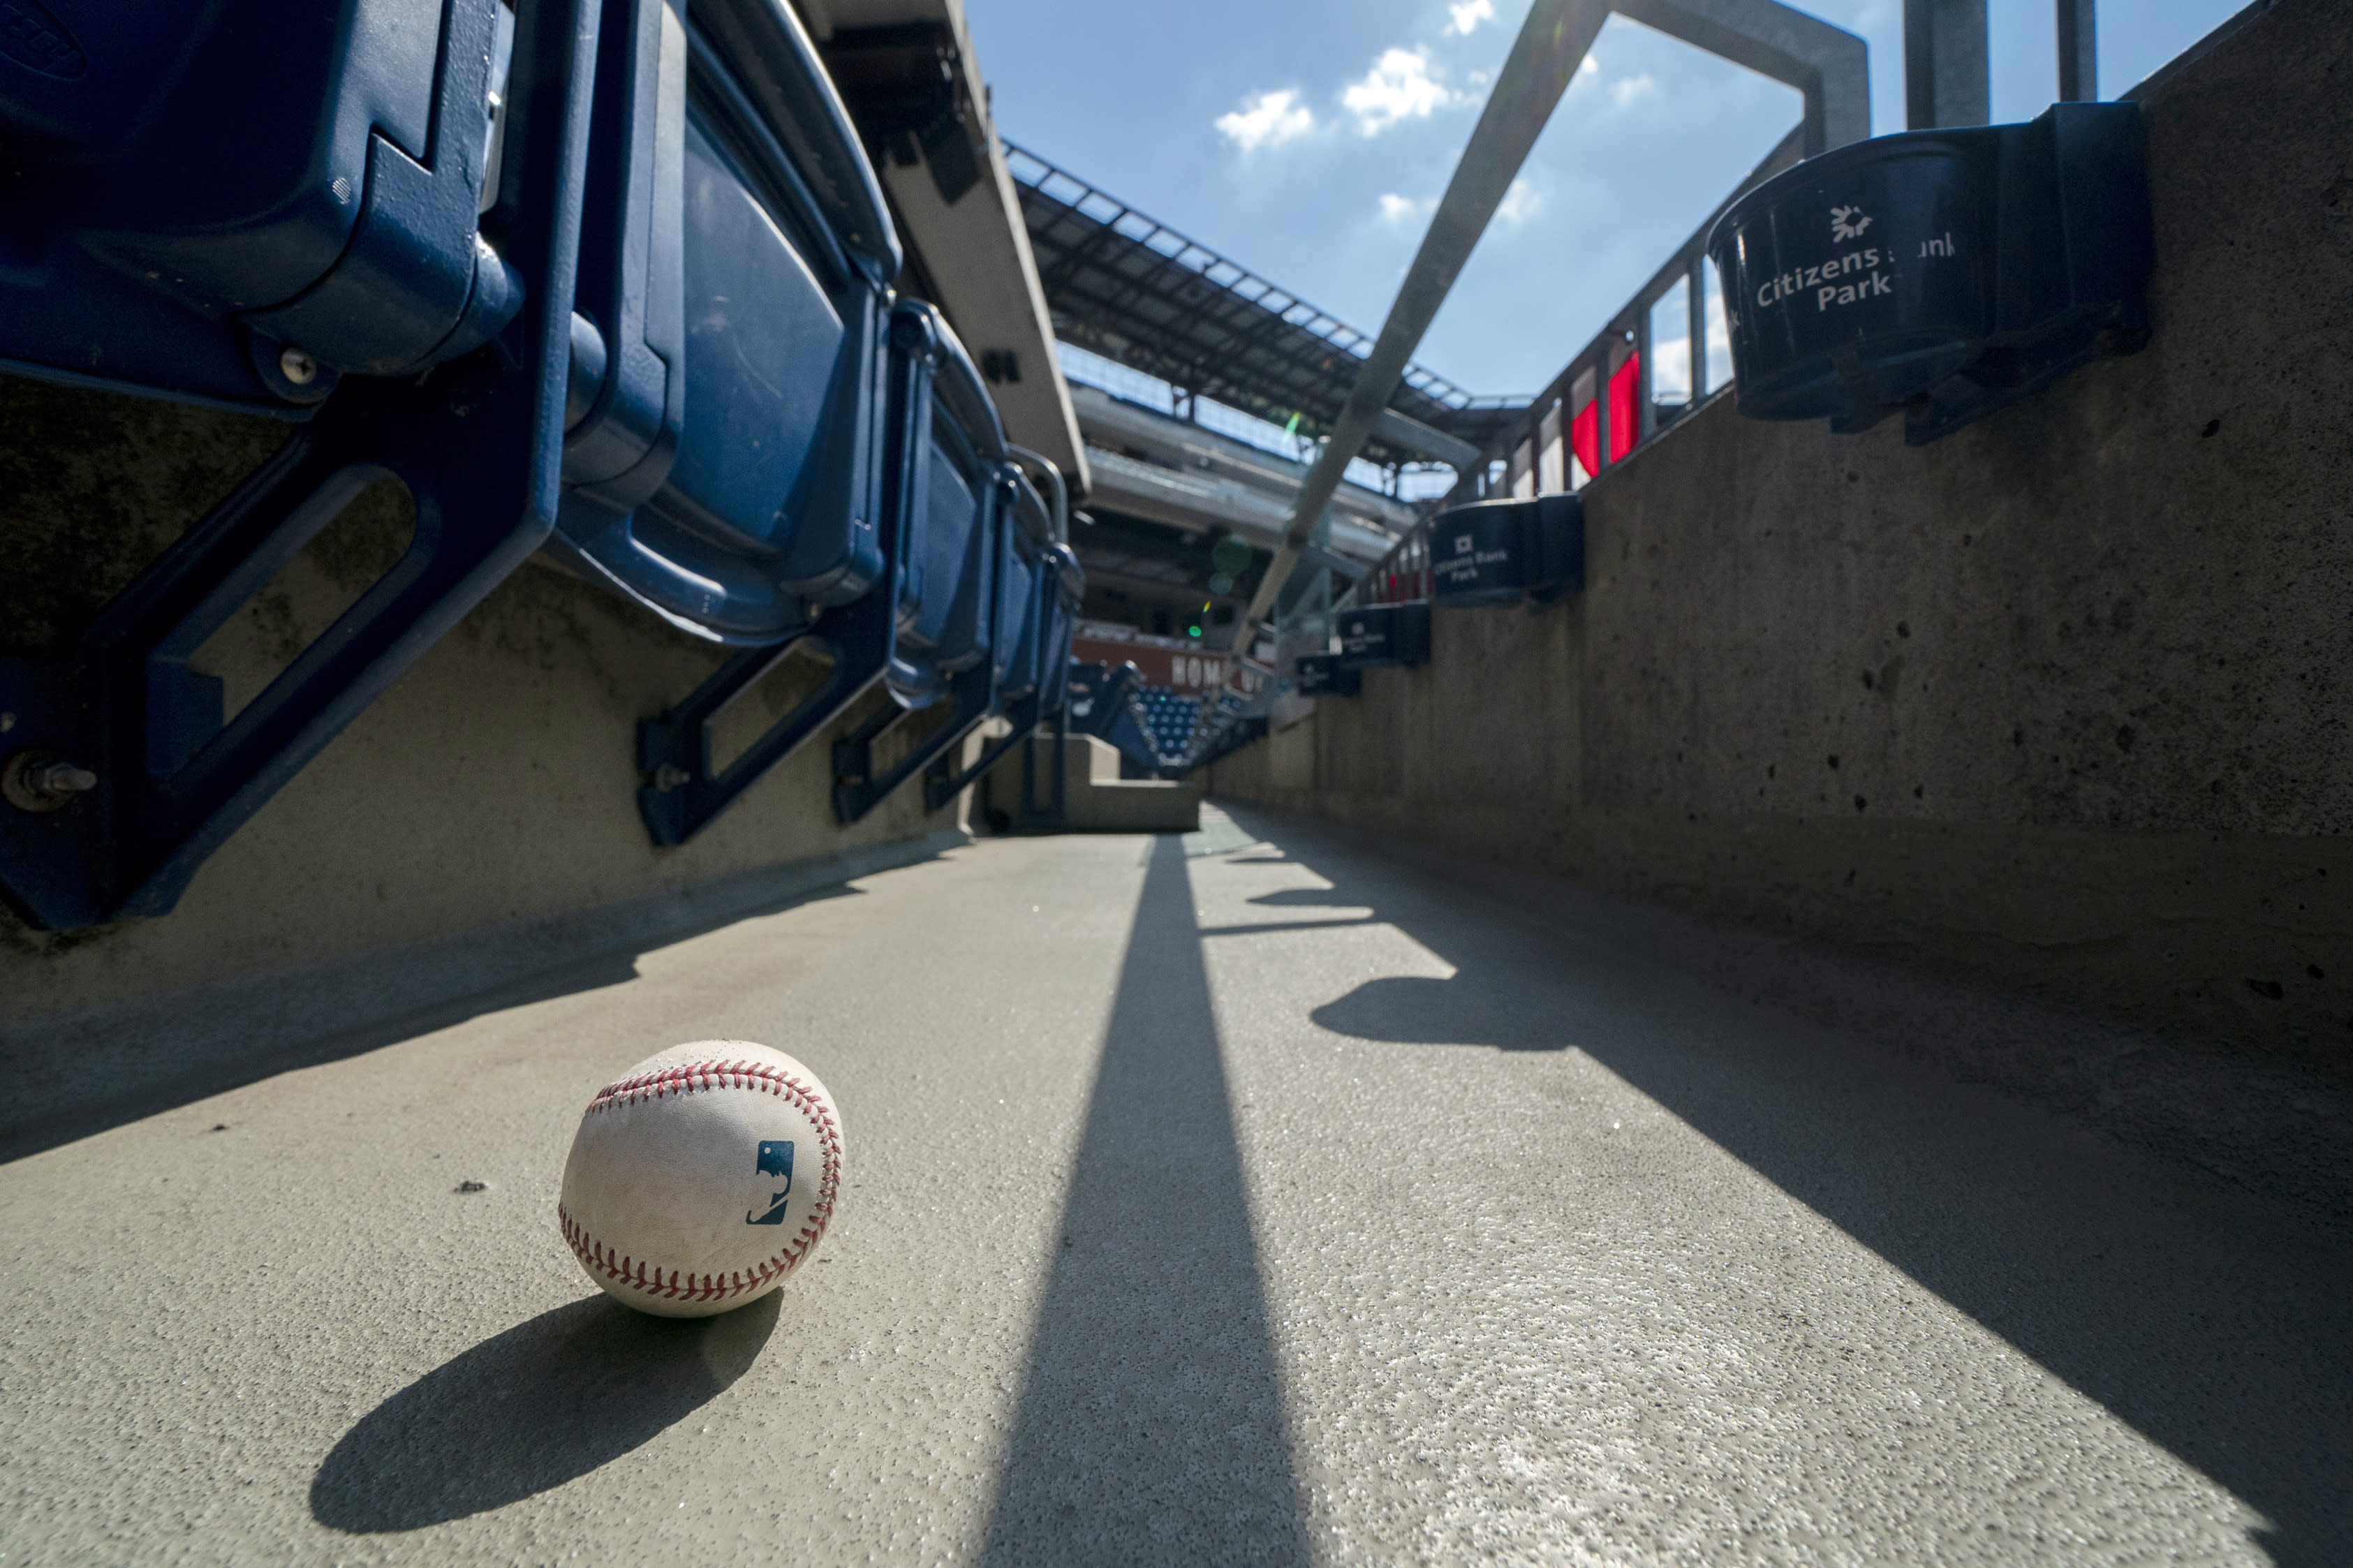 FILE - In this Sunday, July 26, 2020, file photo, a foul ball that was hit into the stands sits on the ground of an empty stadium during the eighth inning of a baseball game between the Miami Marlins and the Philadelphia Phillies in Philadelphia. The Marlins' coronavirus outbreak could endanger the Major League Baseball season, Dr. Anthony Fauci said, as the number of their players testing positive rose to 15. The Marlins received positive test results for four additional players Tuesday, July 23, 2020, a person familiar with the situation told The Associated Press. The person declined to be identified because the results had not been publicly released. (AP Photo/Chris Szagola, File)